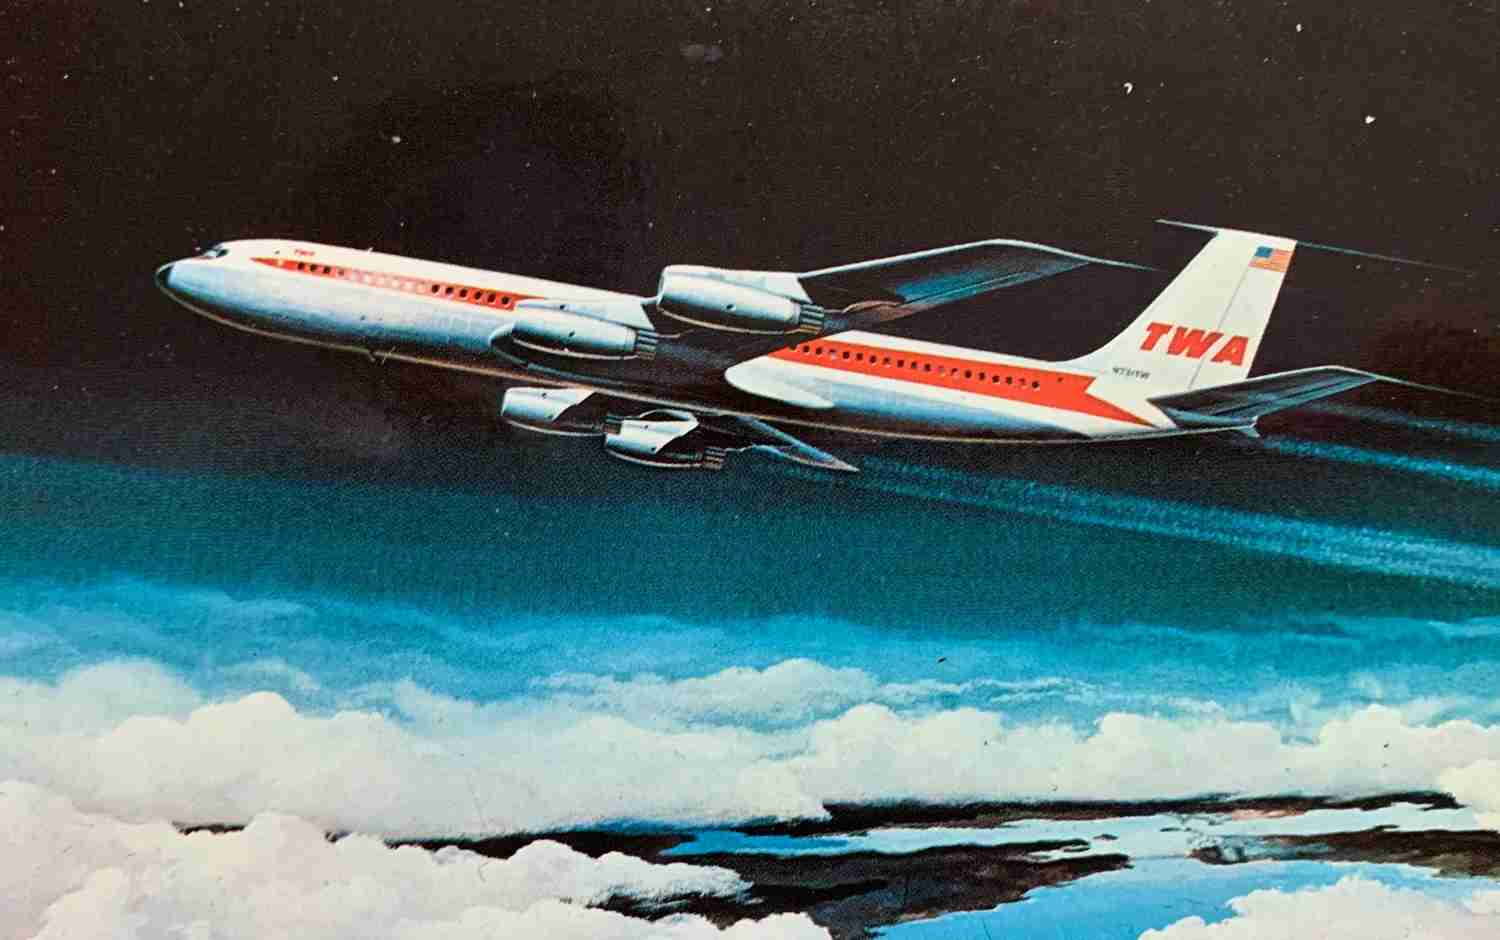 By the end of the 1970s TWA operated more than 80 Boeing 707s.